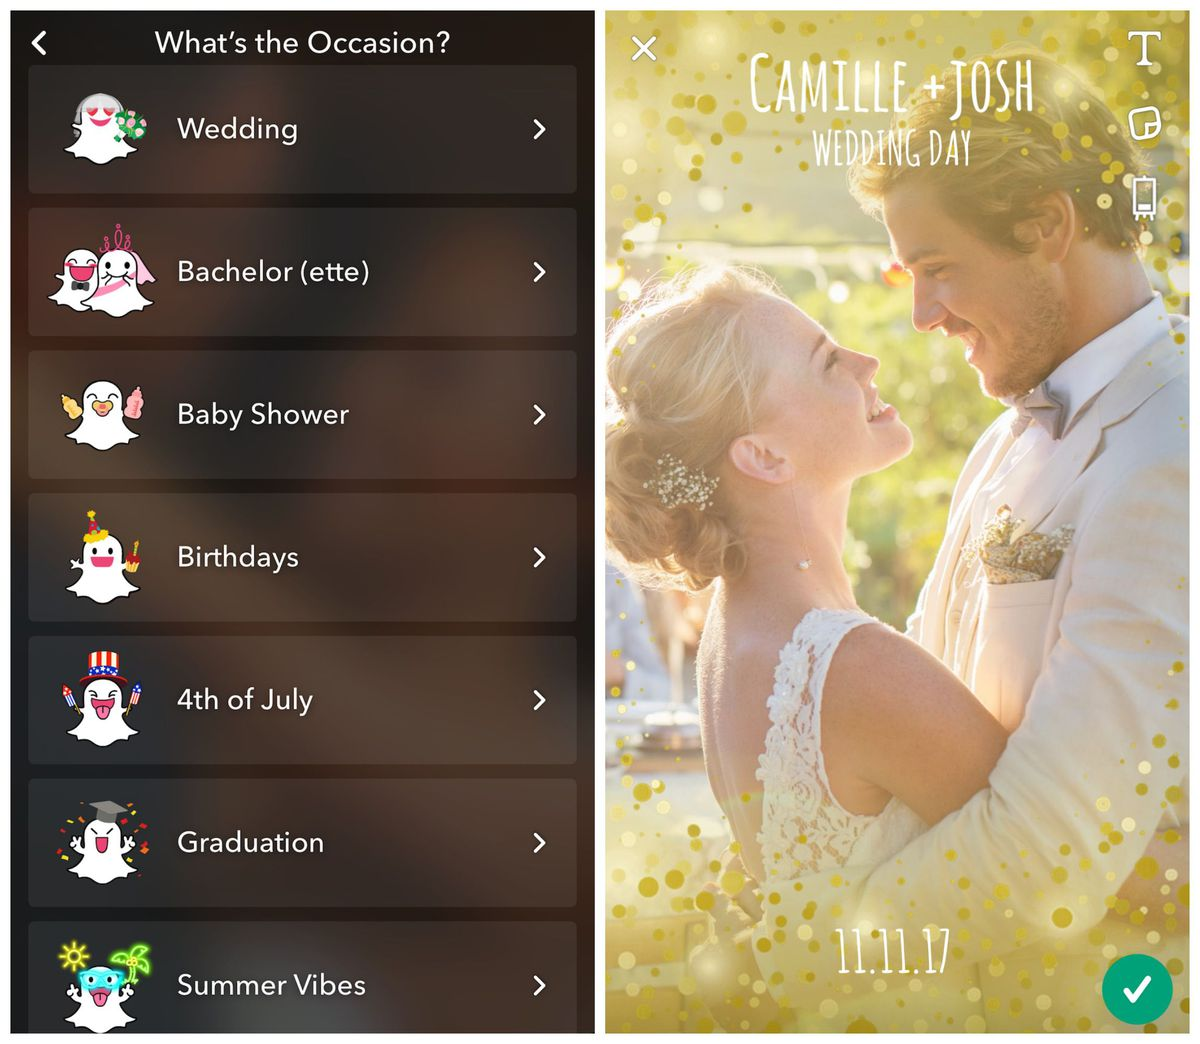 How to create custom Snapchat geofilters in the Snapchat app